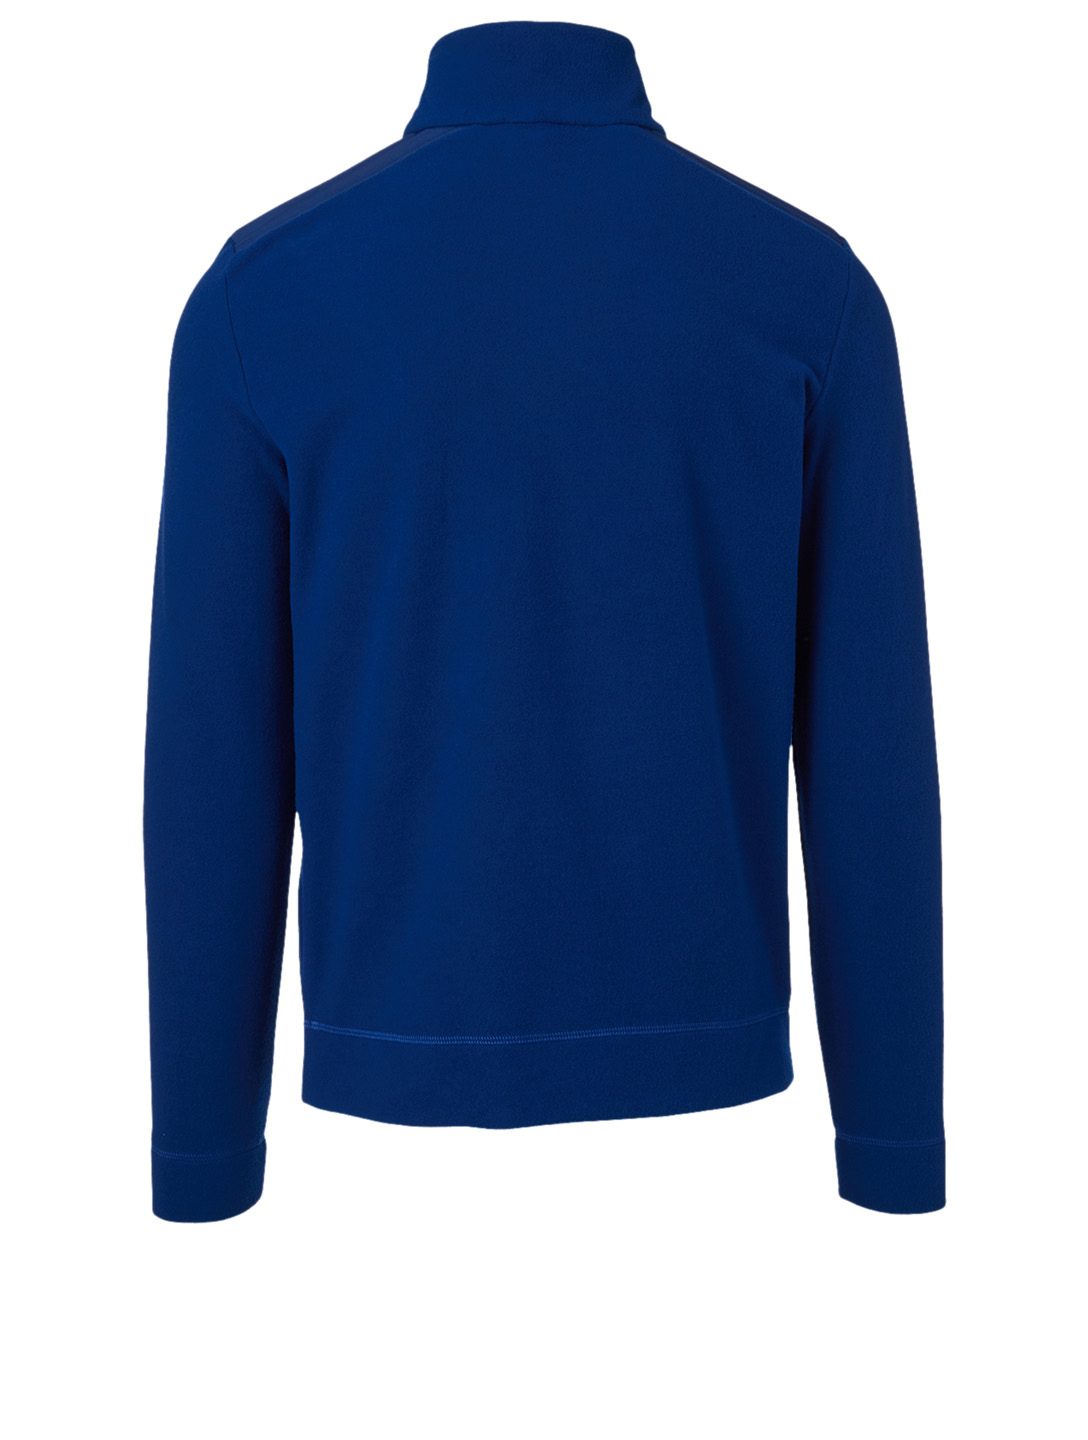 MONCLER GRENOBLE Fleece Zip Sweater Men's Blue